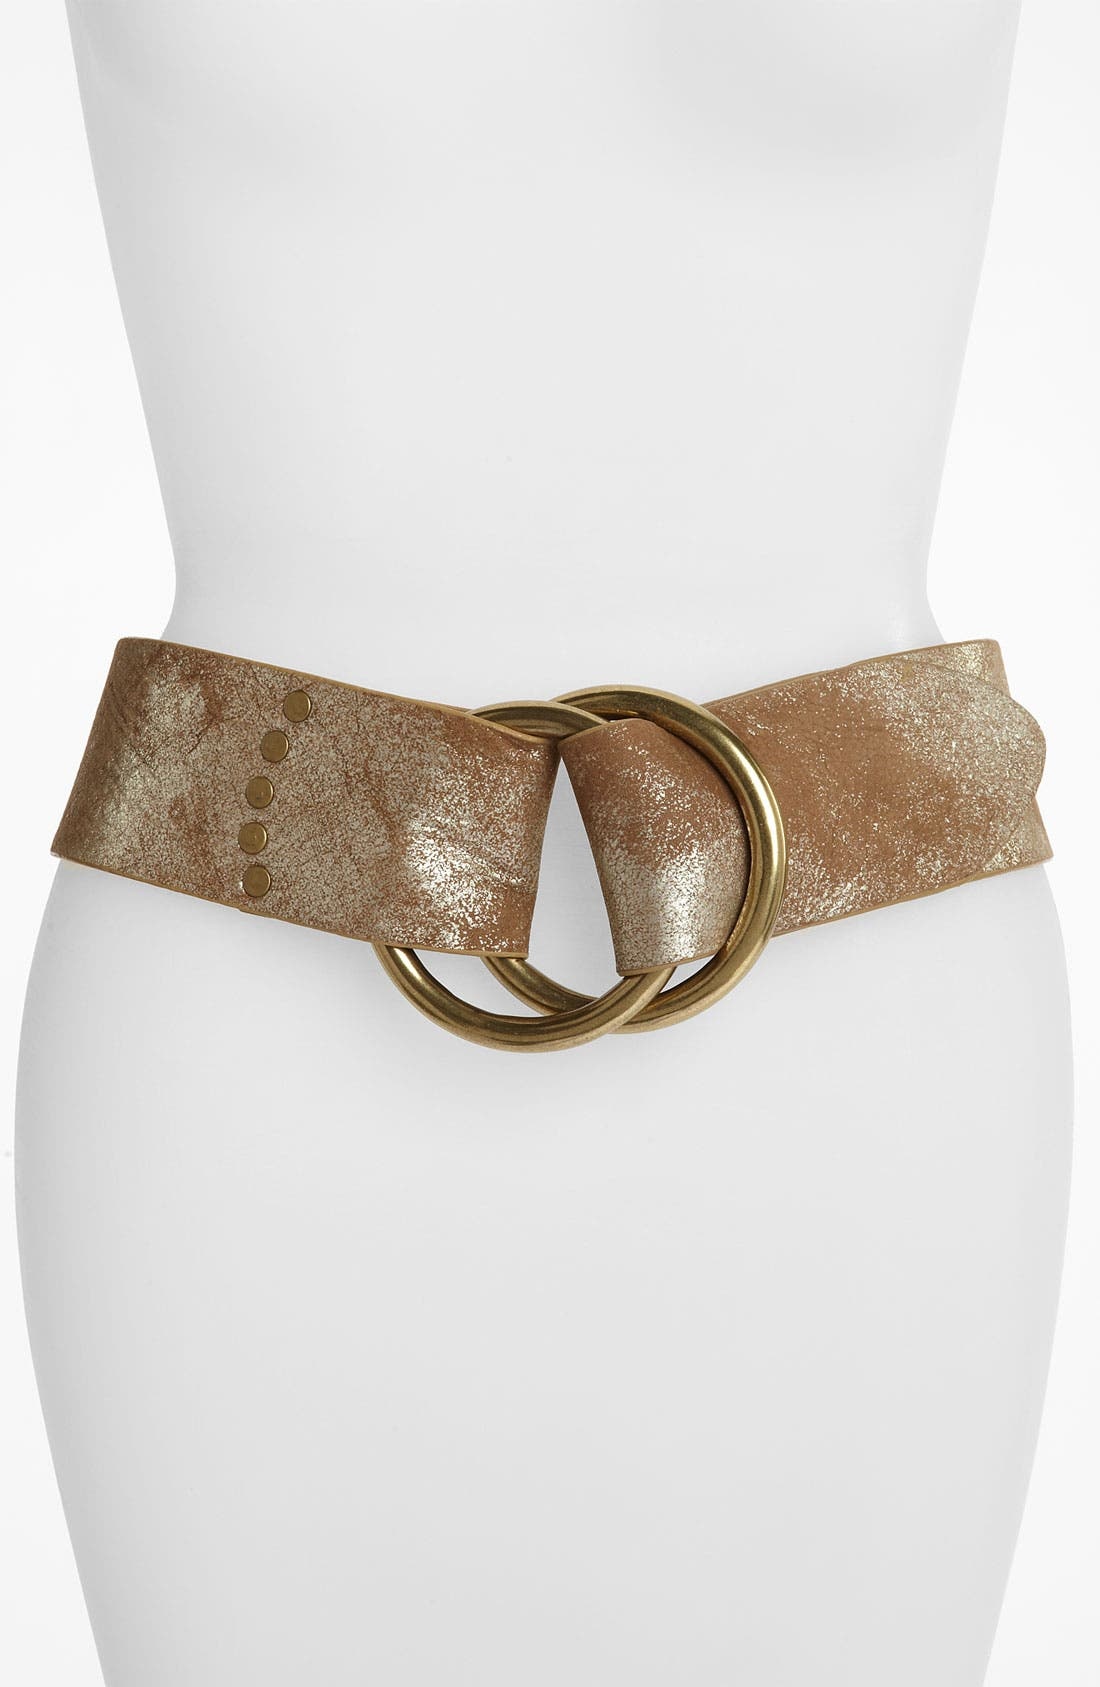 Alternate Image 1 Selected - Lauren Ralph Lauren Metallic Washed Leather Double Ring Belt